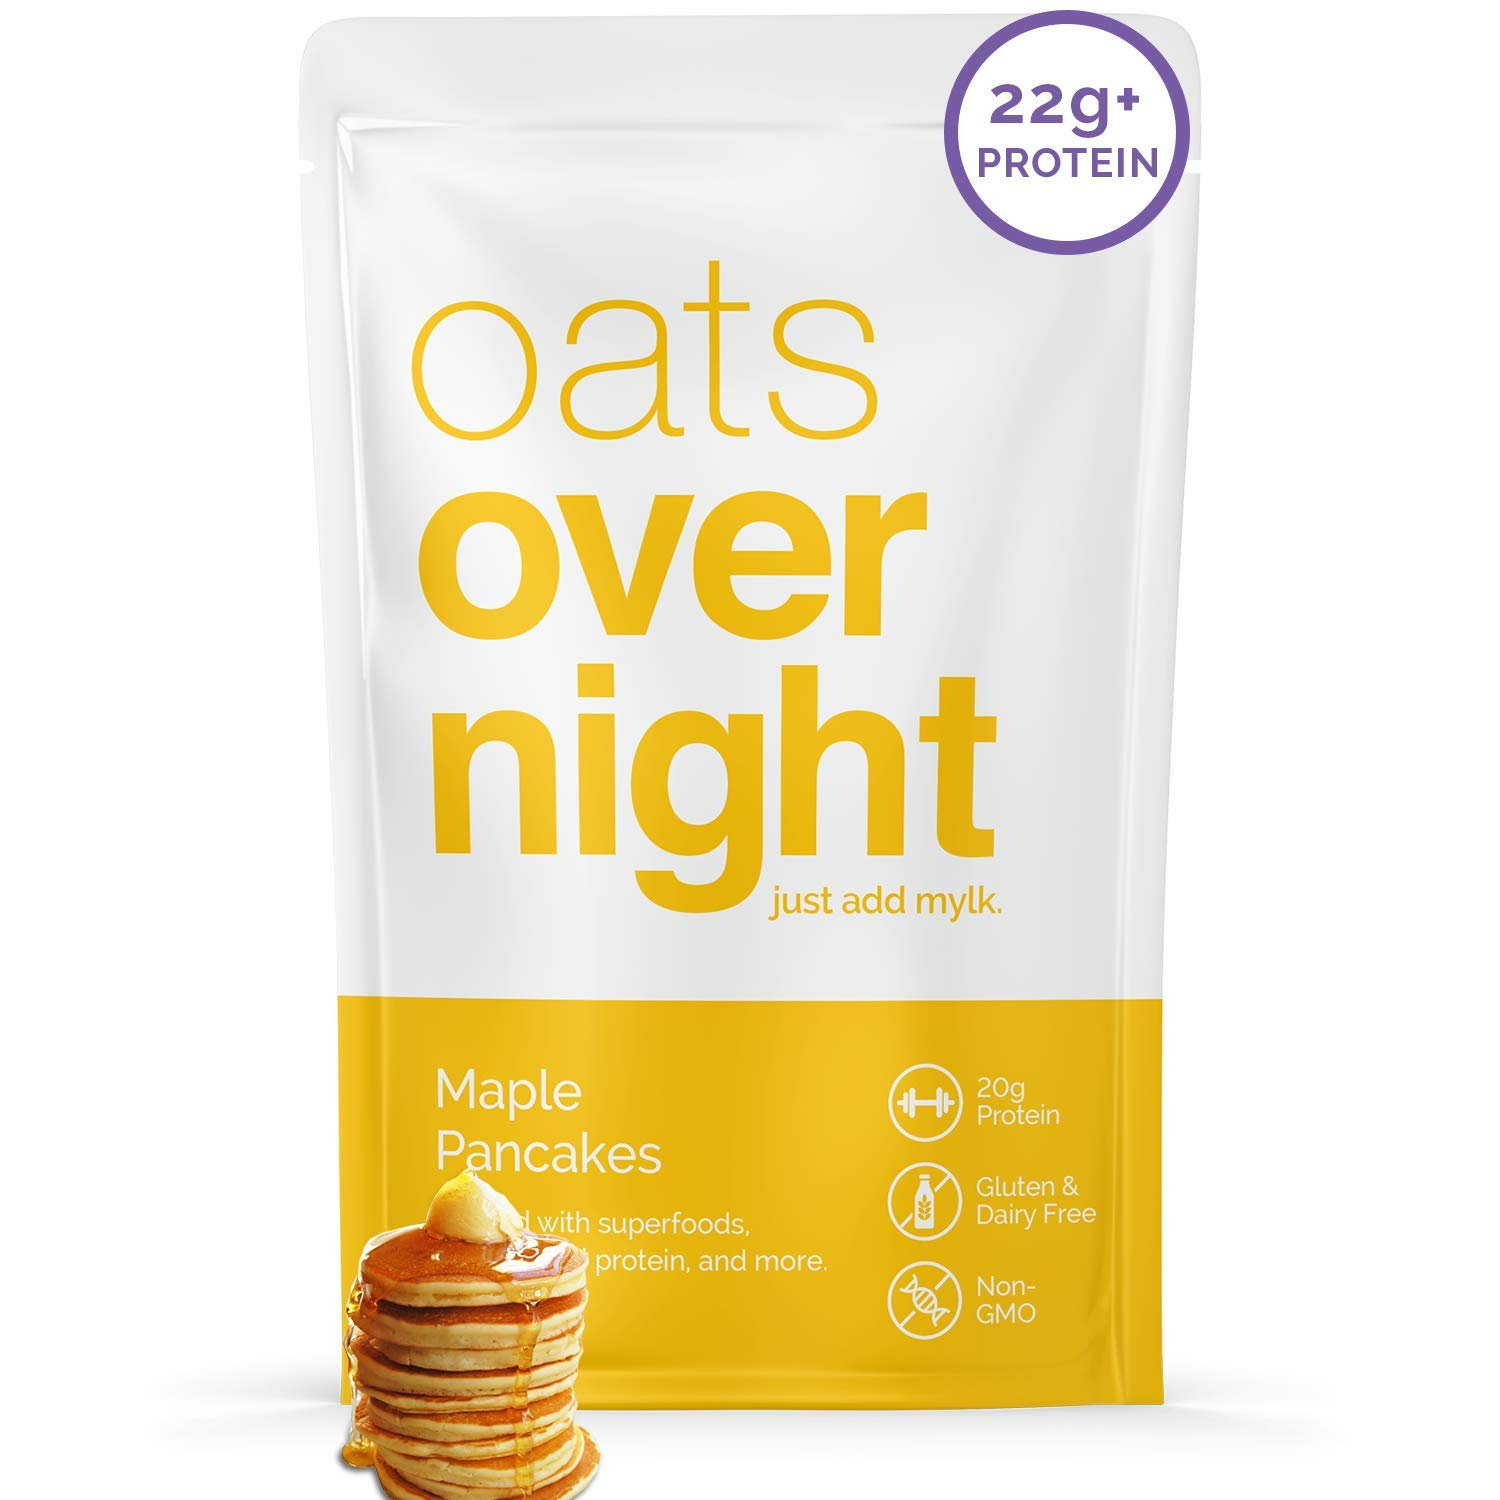 Oats Overnight - Maple Pancakes (8 Meals) Dairy Free, High Protein, Low Sugar Breakfast Shake - Gluten Free, High Fiber, Non GMOOatmeal(2.6oz per meal)